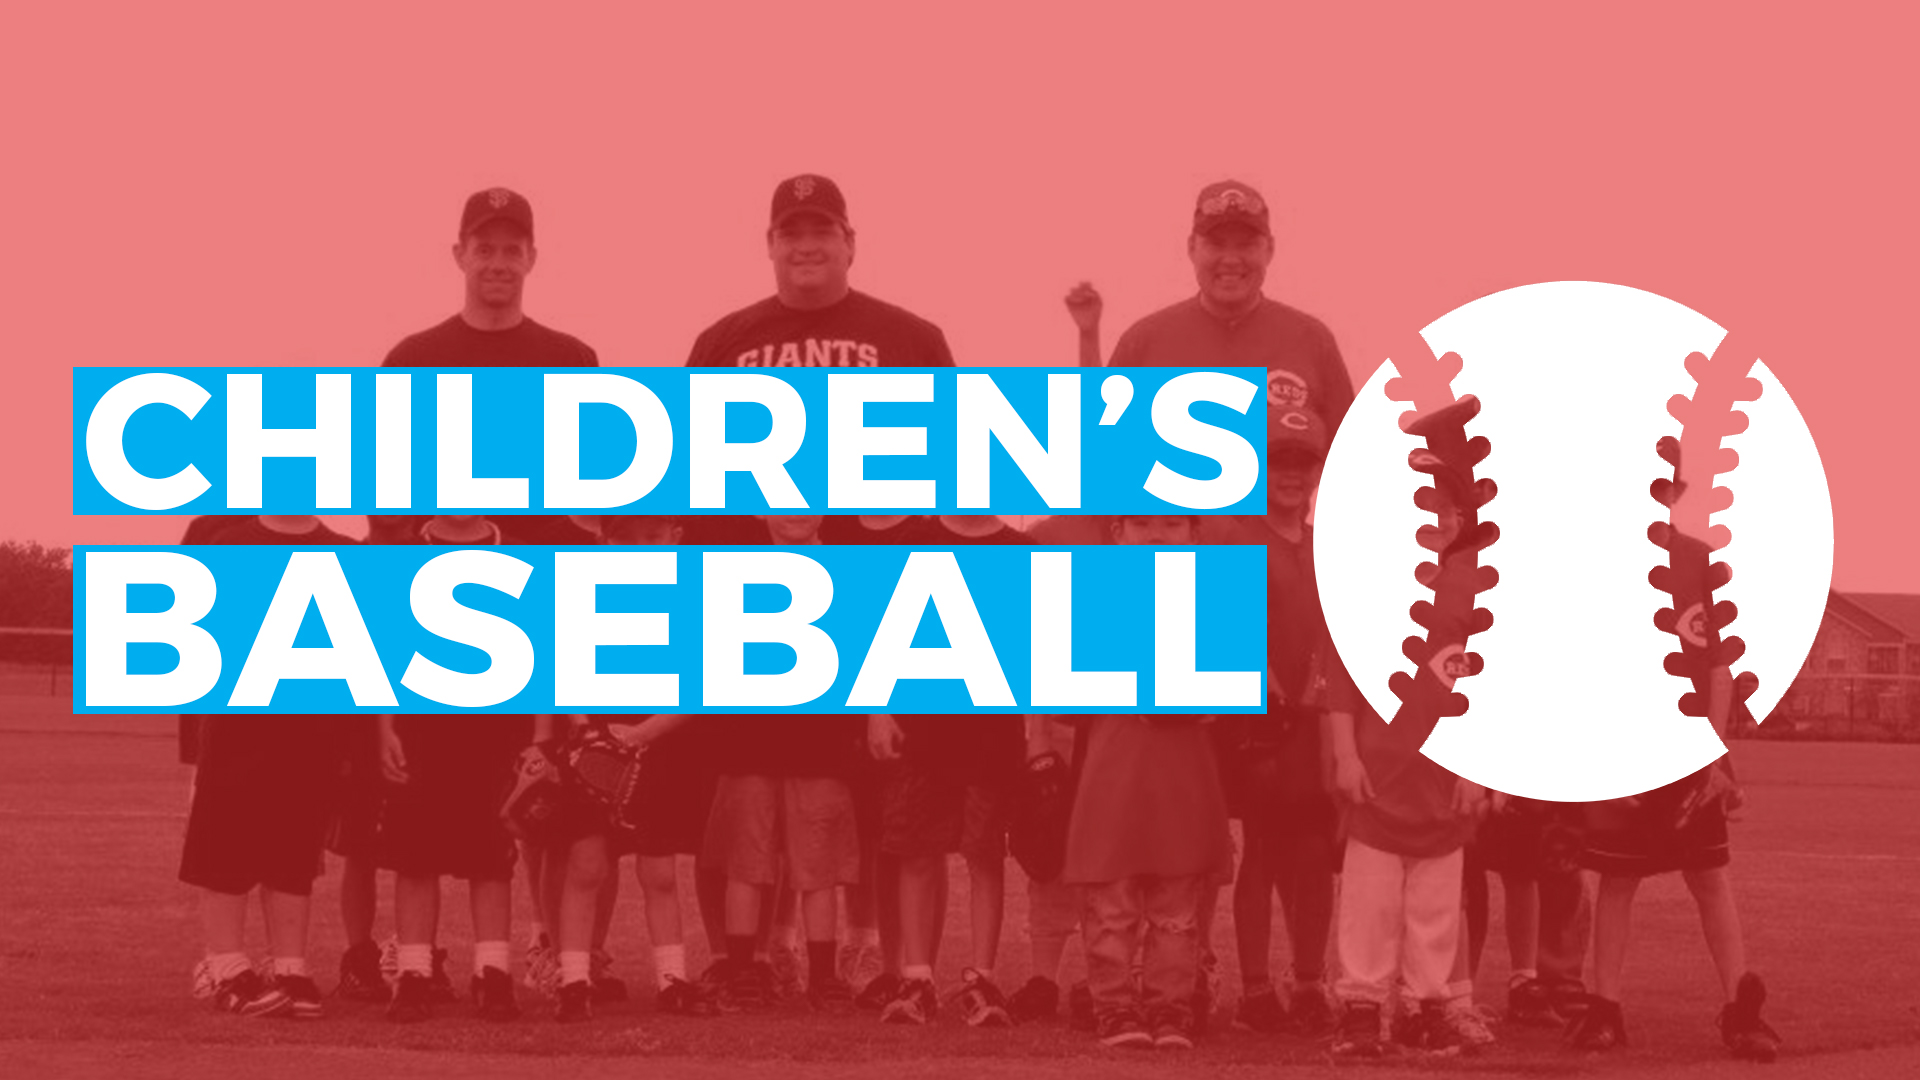 childrensbaseball-w.jpg